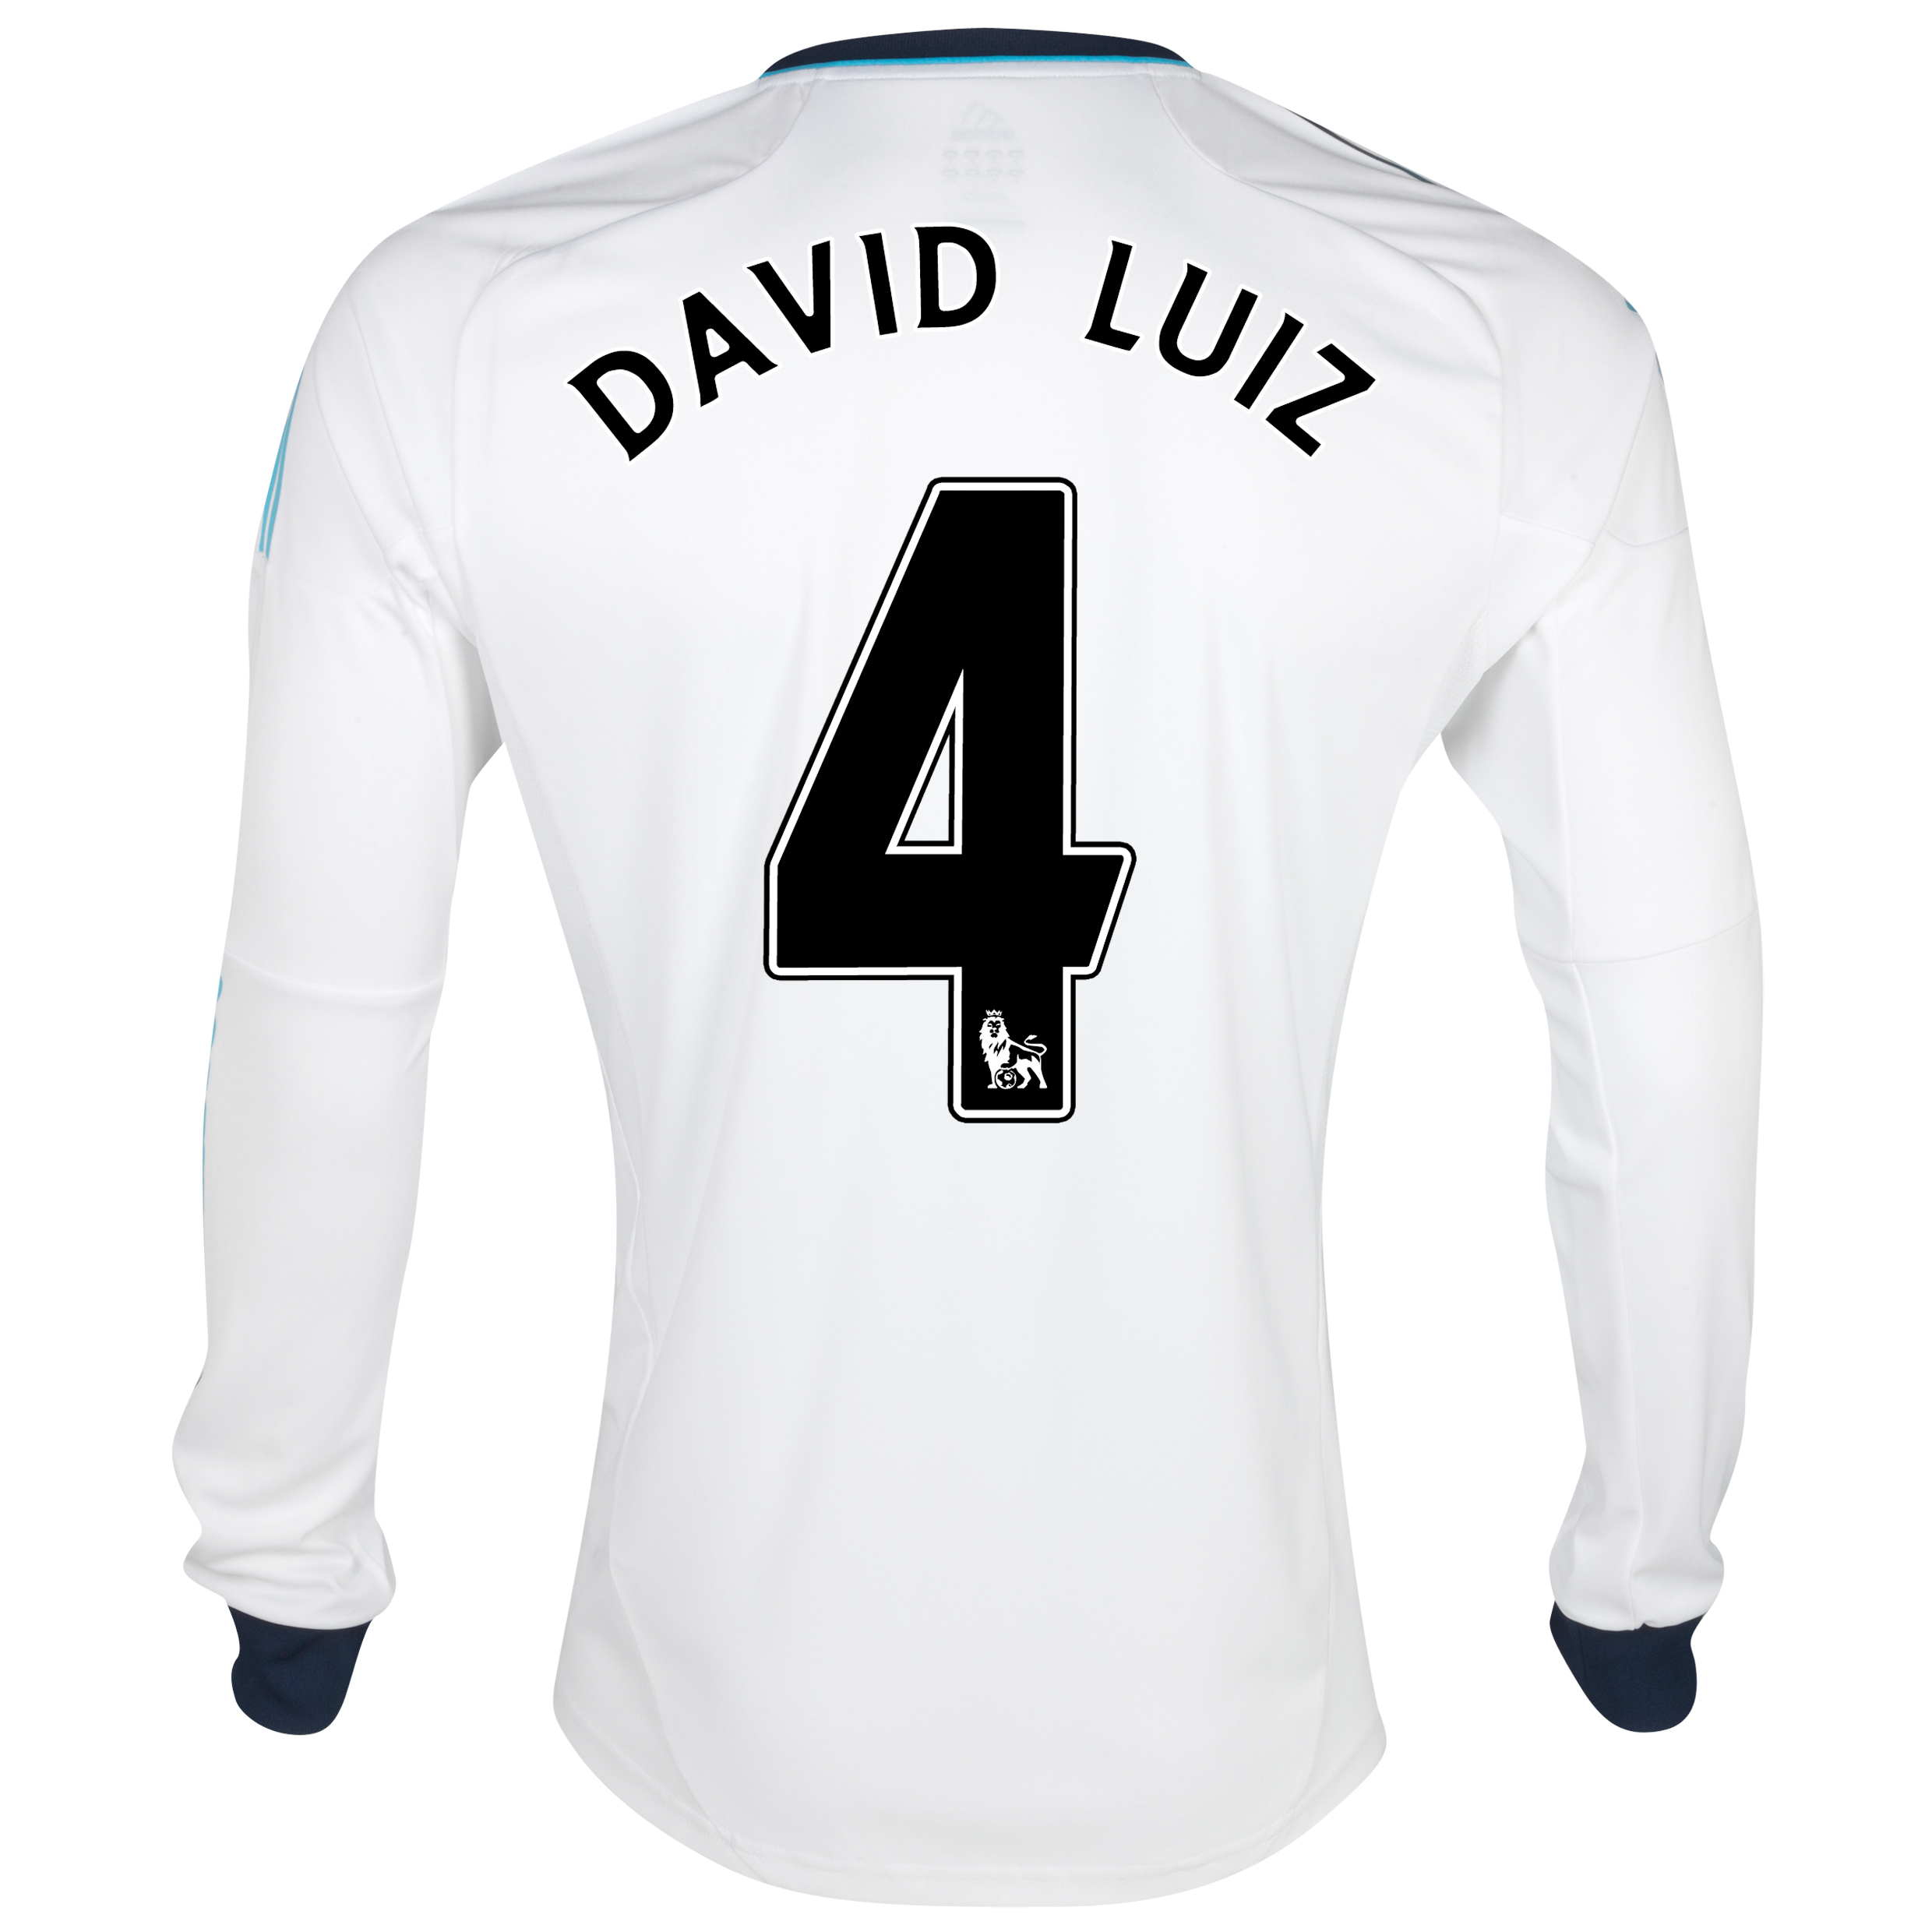 Chelsea Away Shirt 2012/13 - Long Sleeved with David Luiz 4 printing